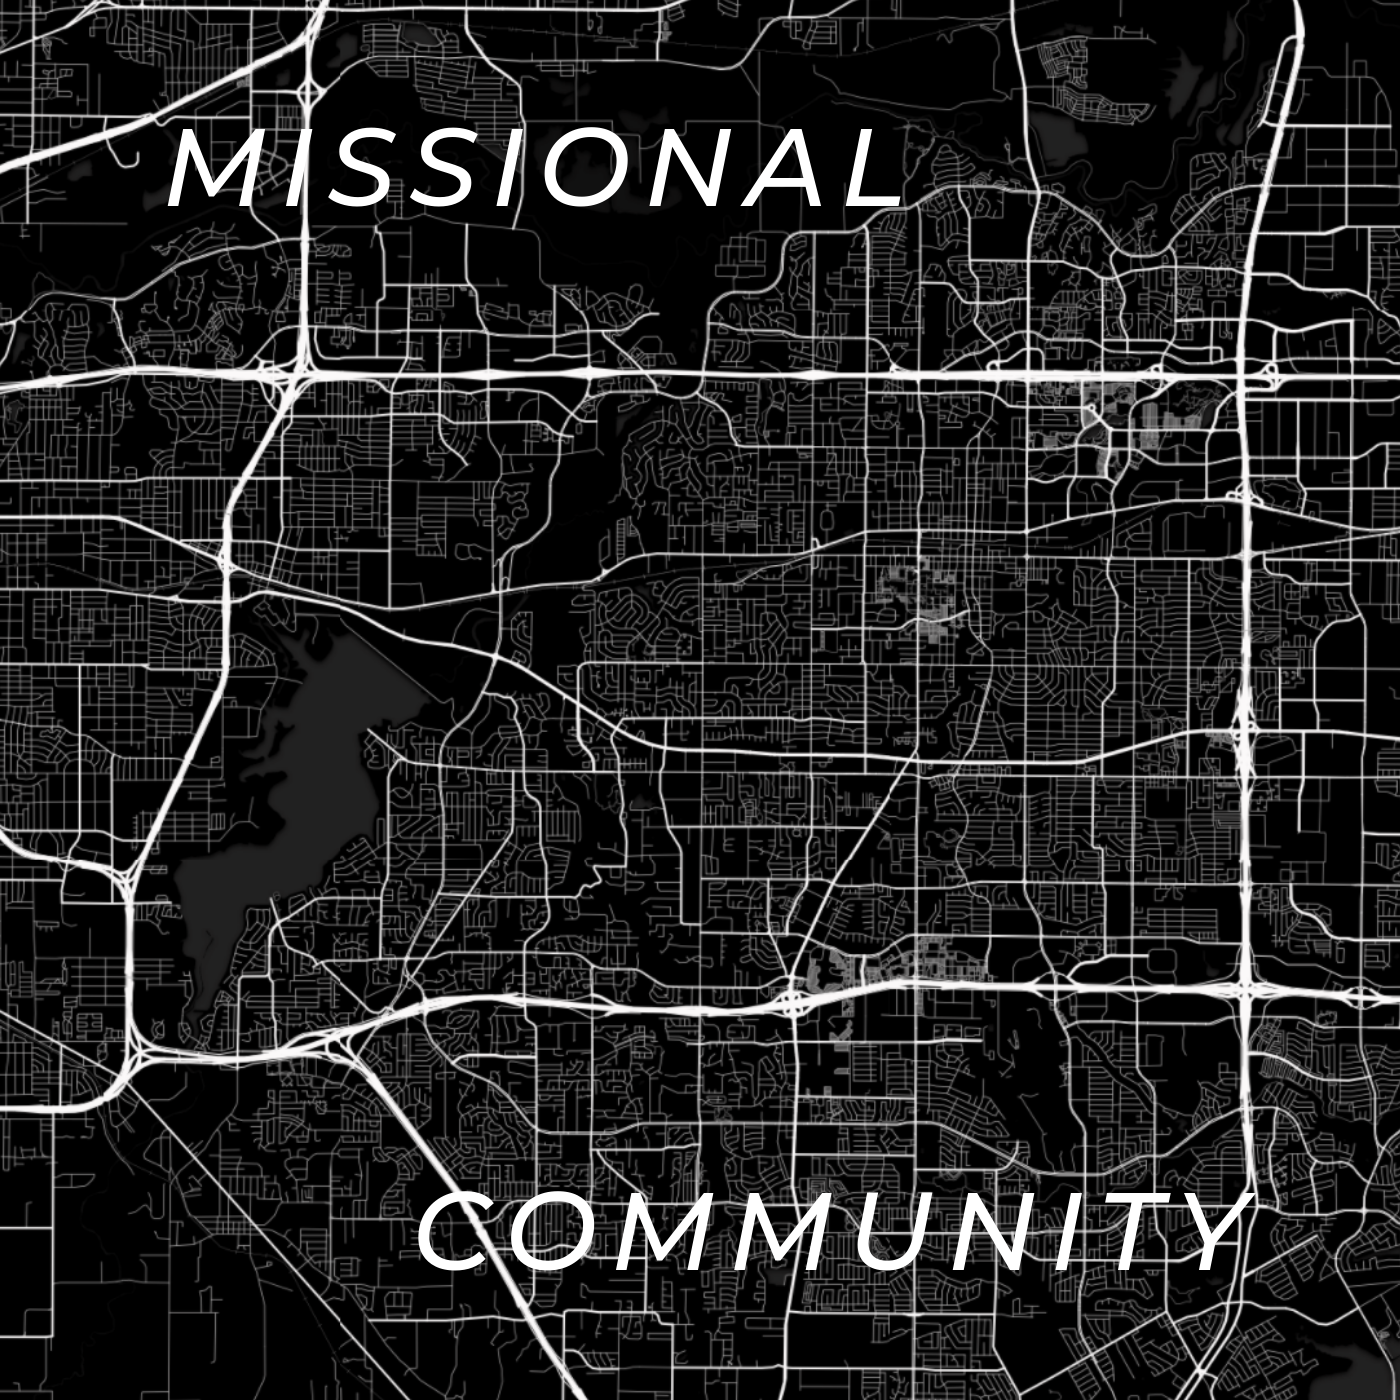 What's an MC? - A Missional Community is a space our people create for others to experience life in the Kingdom and discipleship. Each MC meets weekly and is led by trusted leaders within our church. In these simple gatherings, we come together to share a meal, read scripture, pray for one another, and live as family. Our Missional Communities gather throughout our city; if you are interested in finding an MC in your area, click the button below.